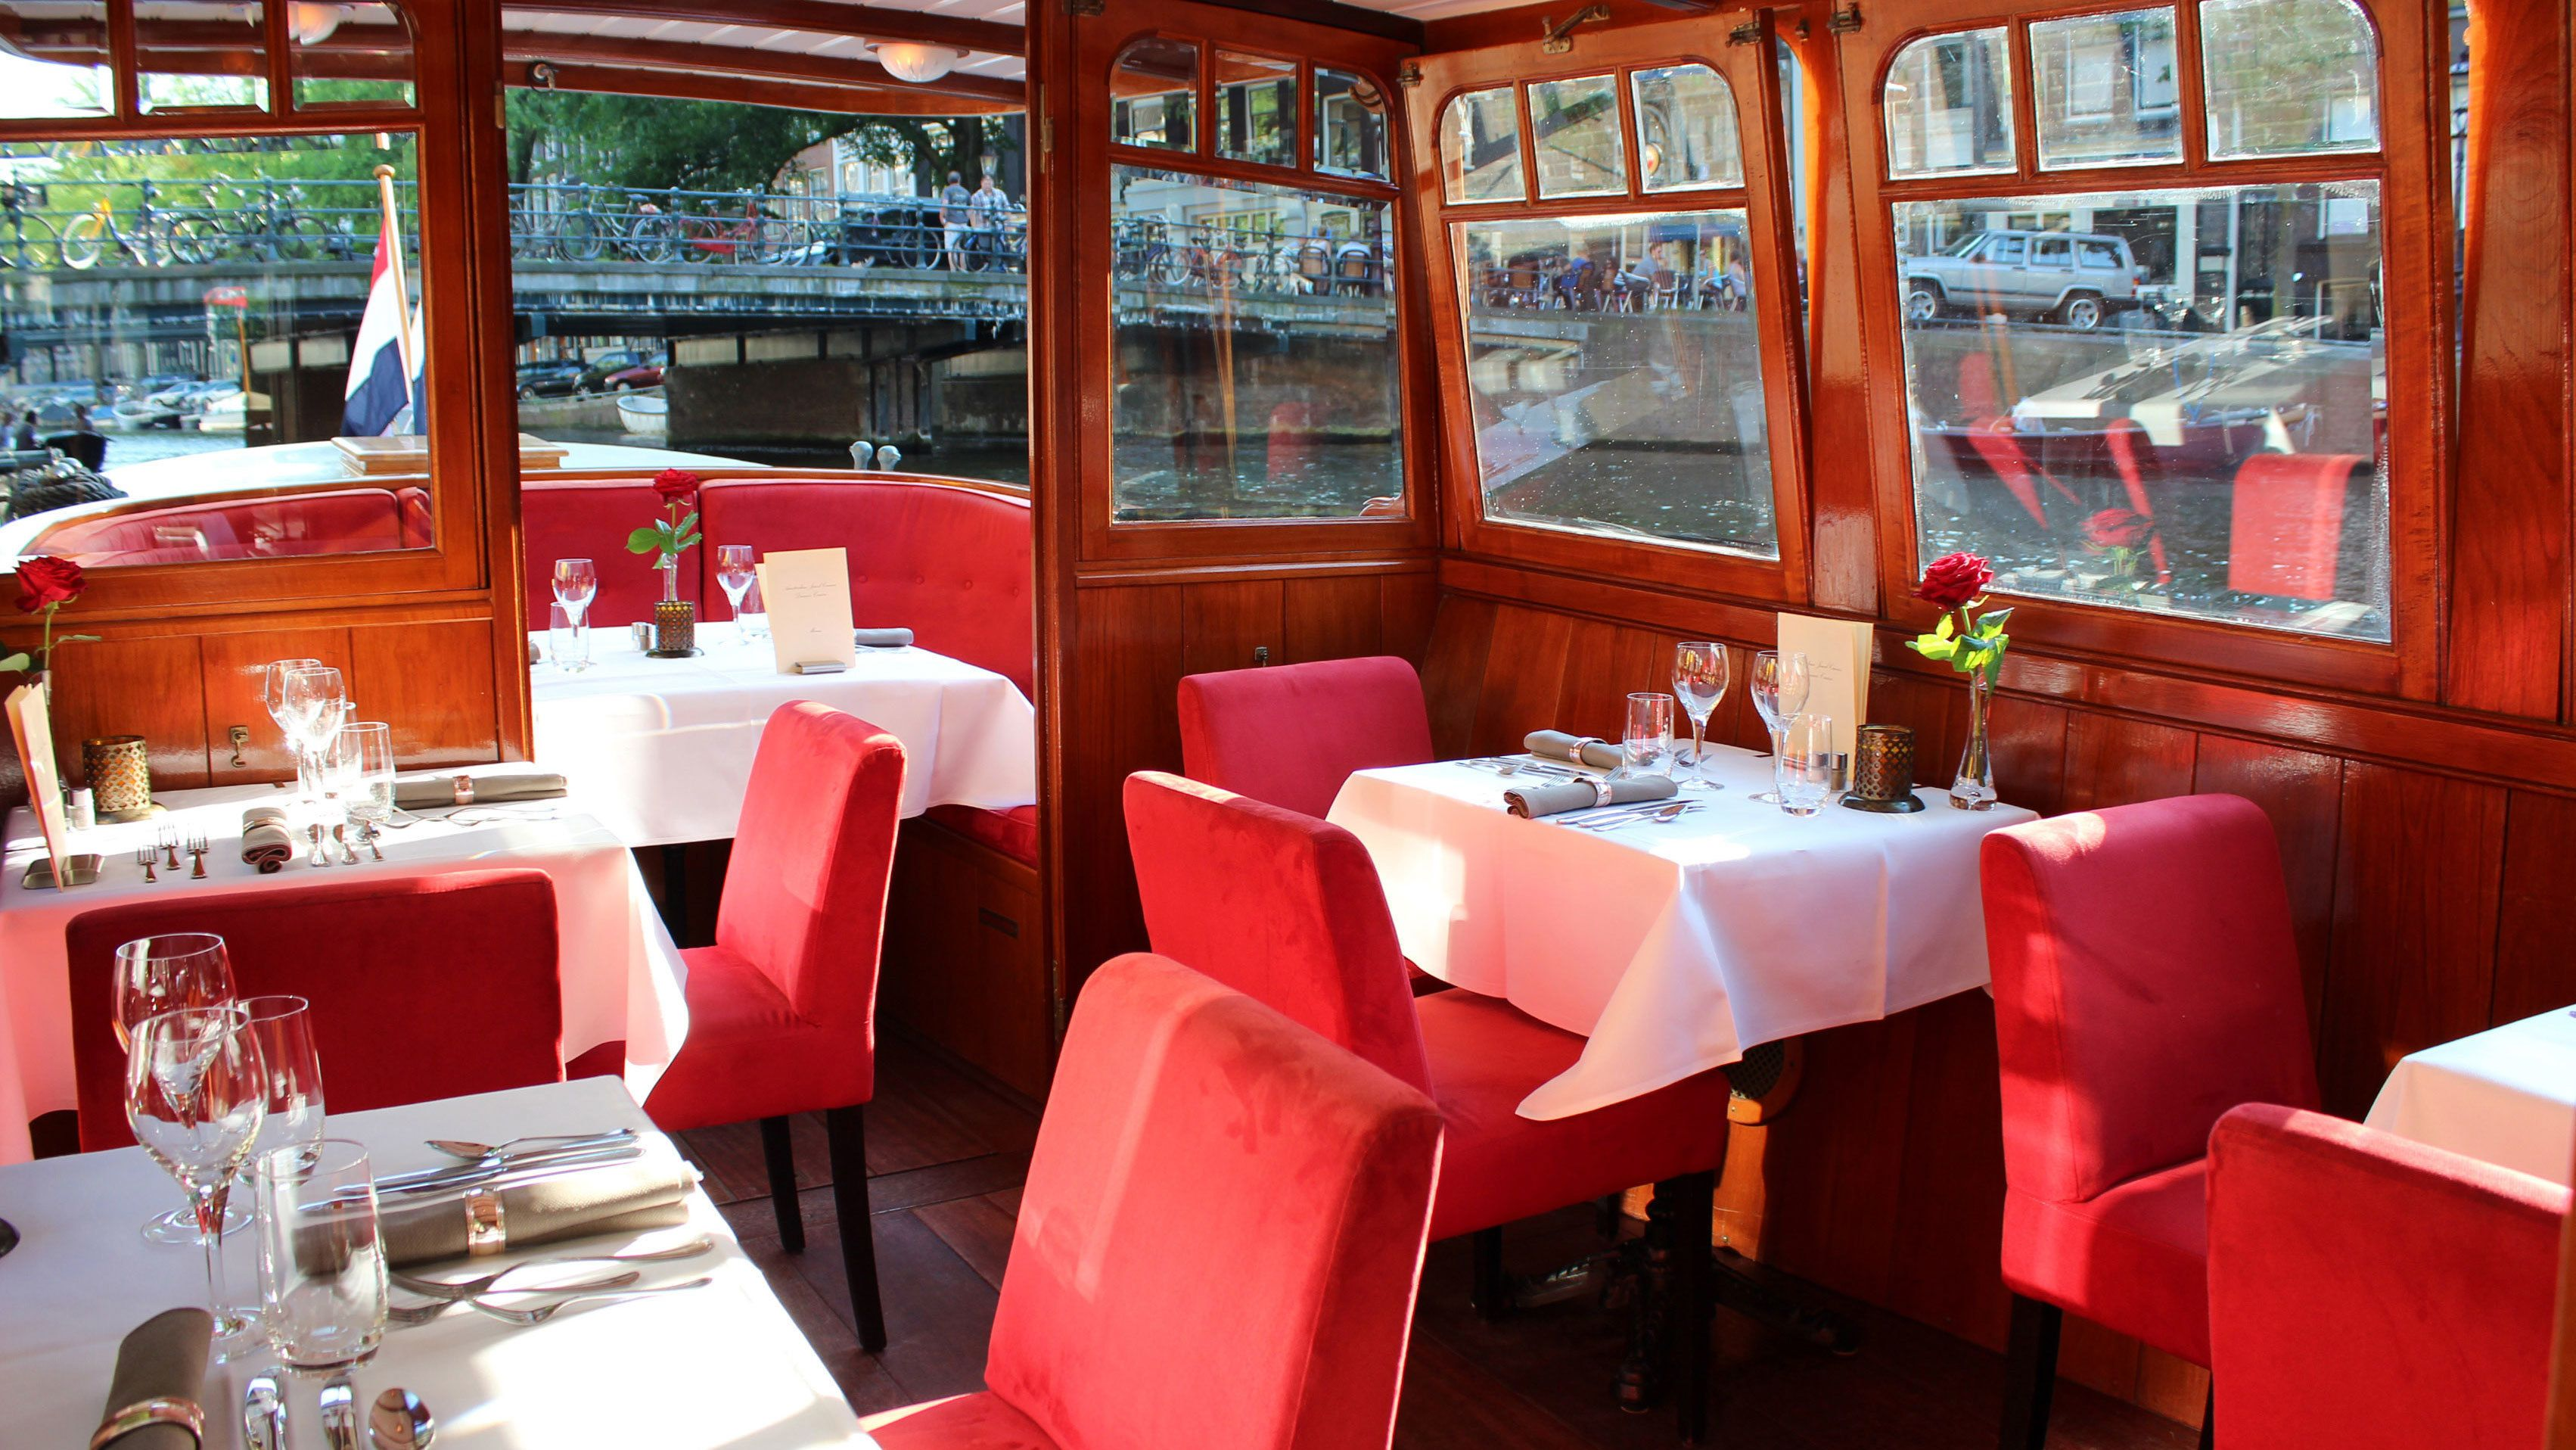 Dining area on cruise boat in Amsterdam